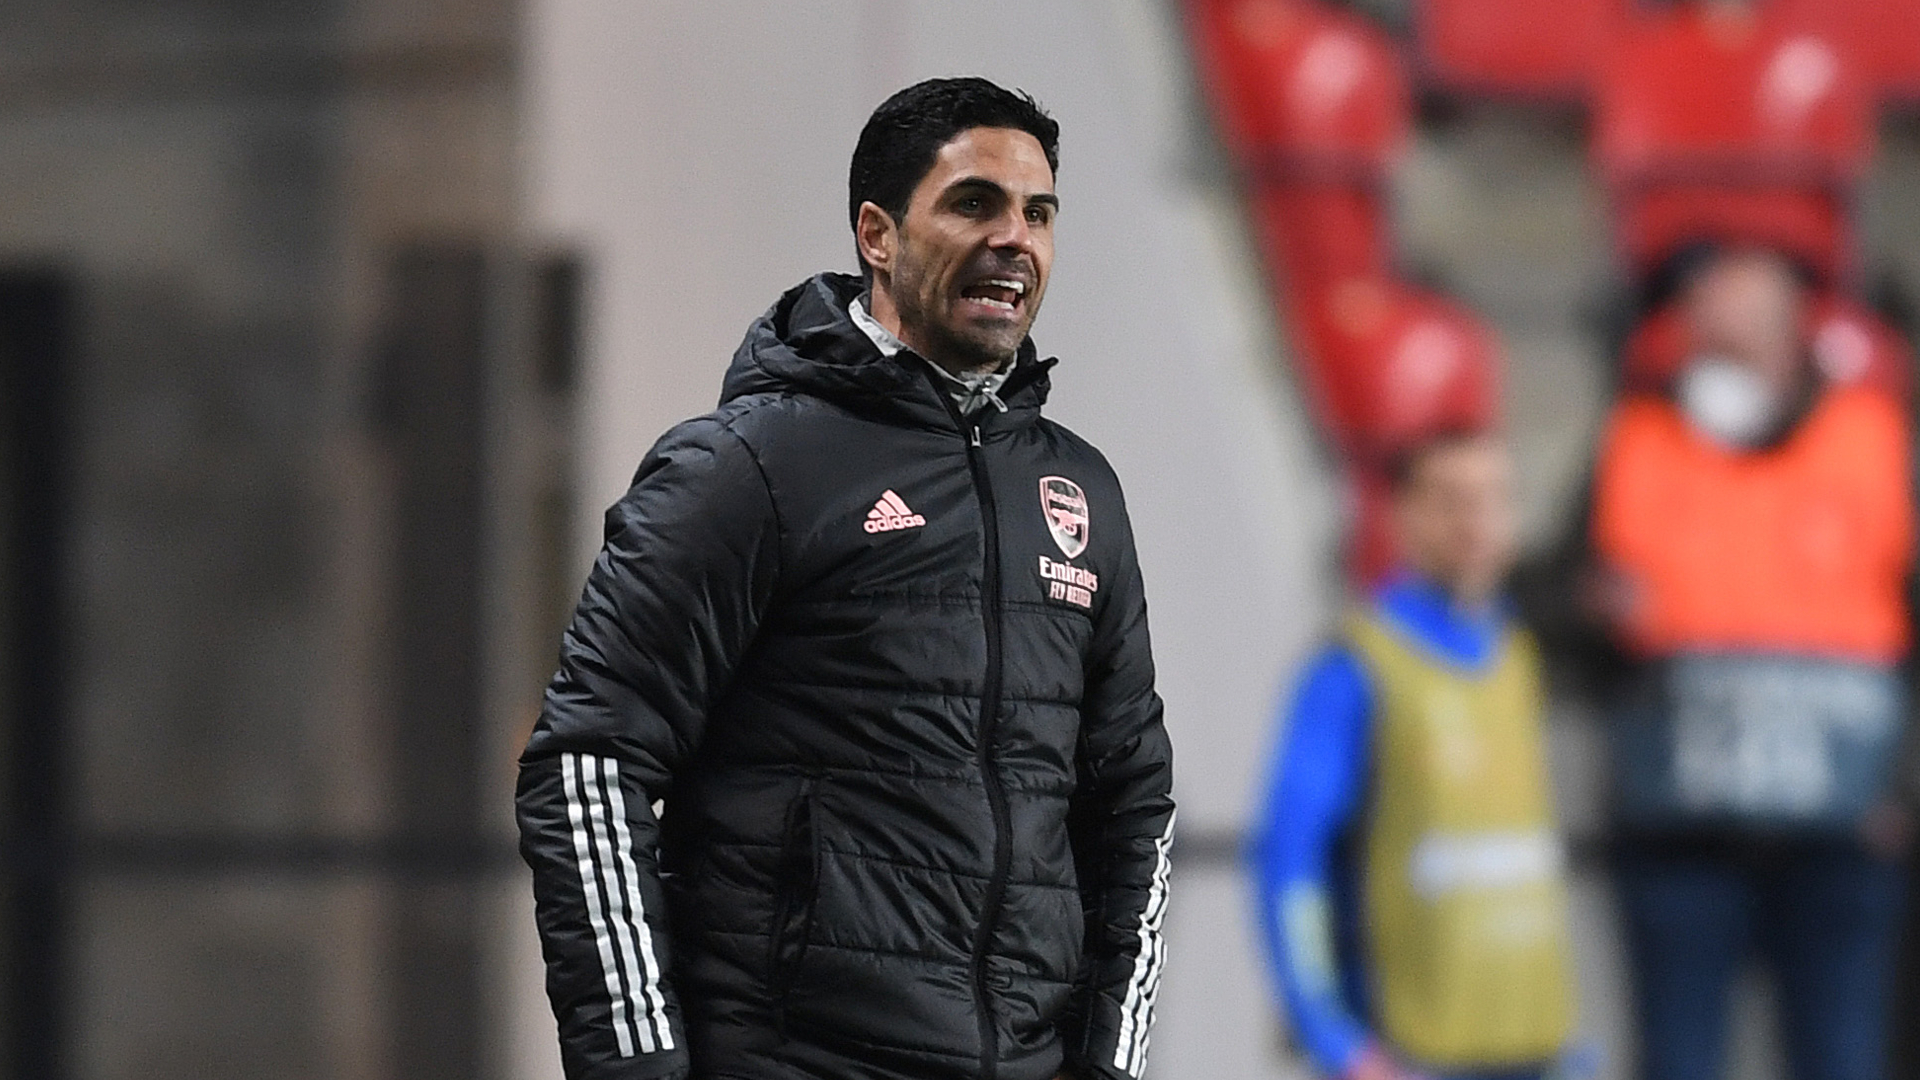 Arteta expecting tough test against Emery's Villarreal after easing past Slavia Prague